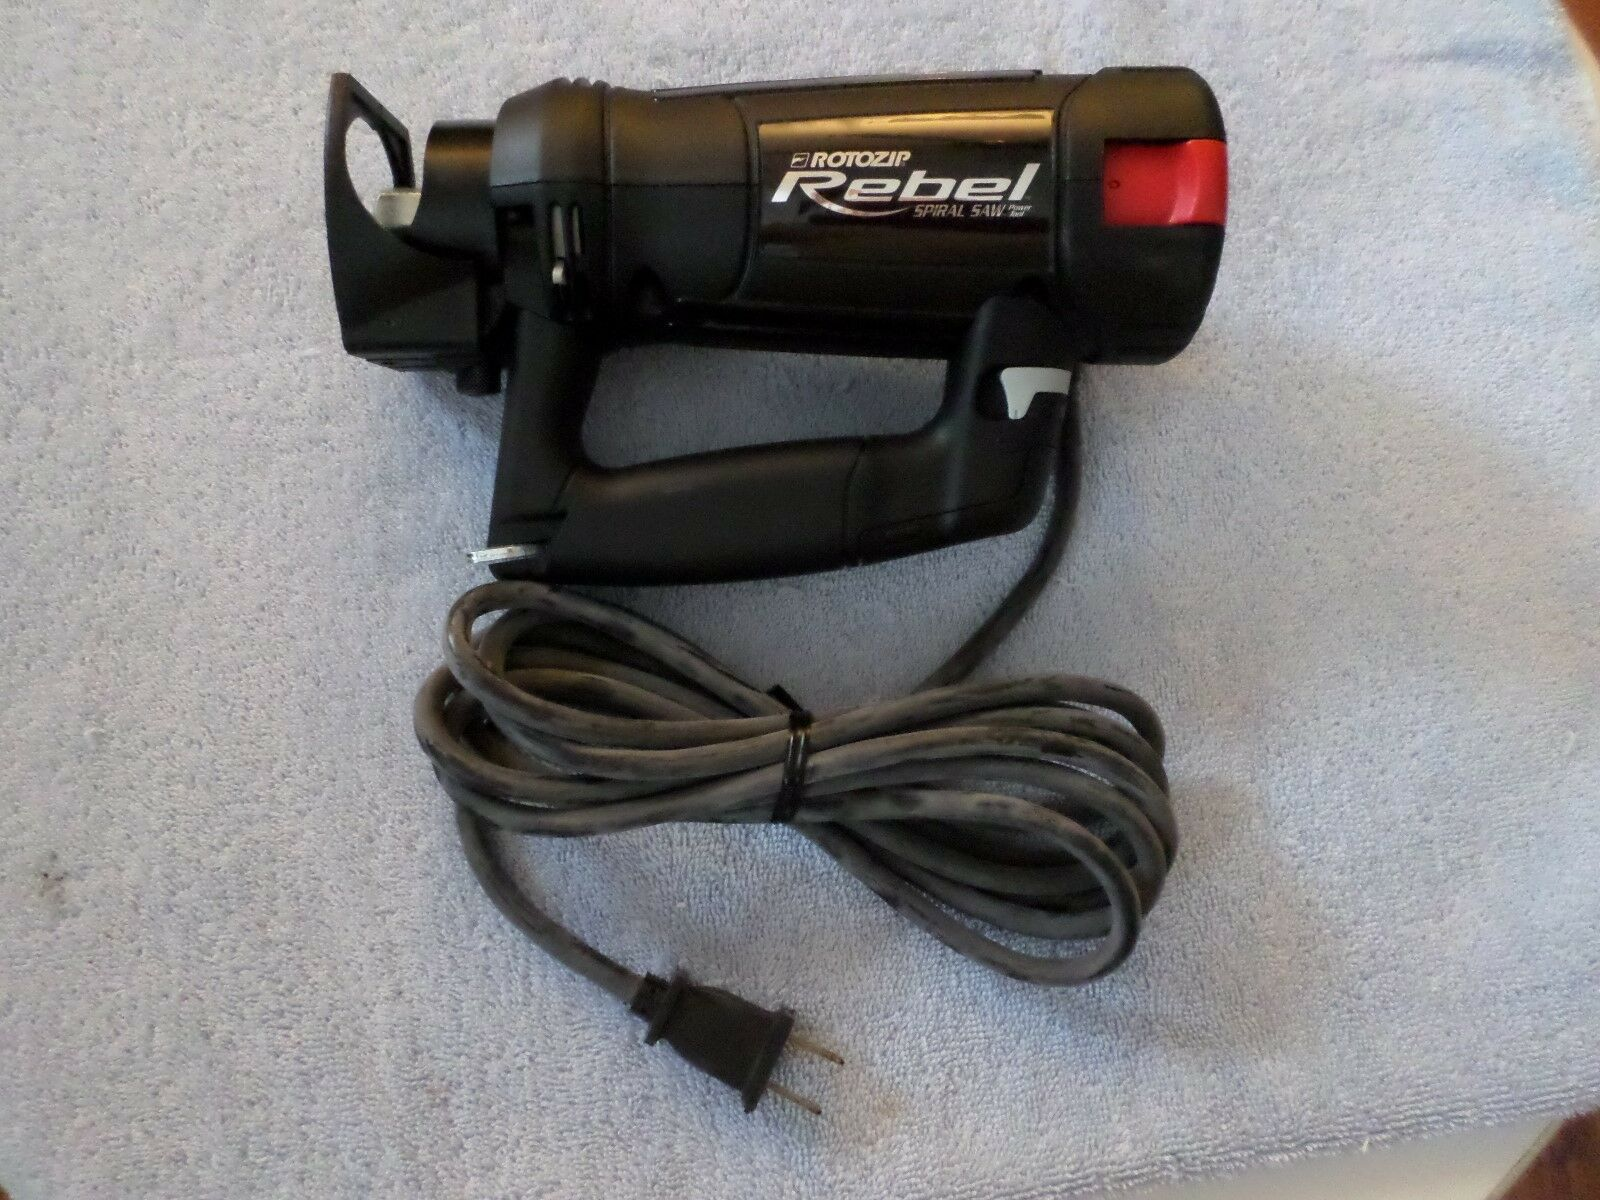 Rotozip power rotary tools ebay rotozip rebel spiral saw type 3 corded new without box dailygadgetfo Choice Image